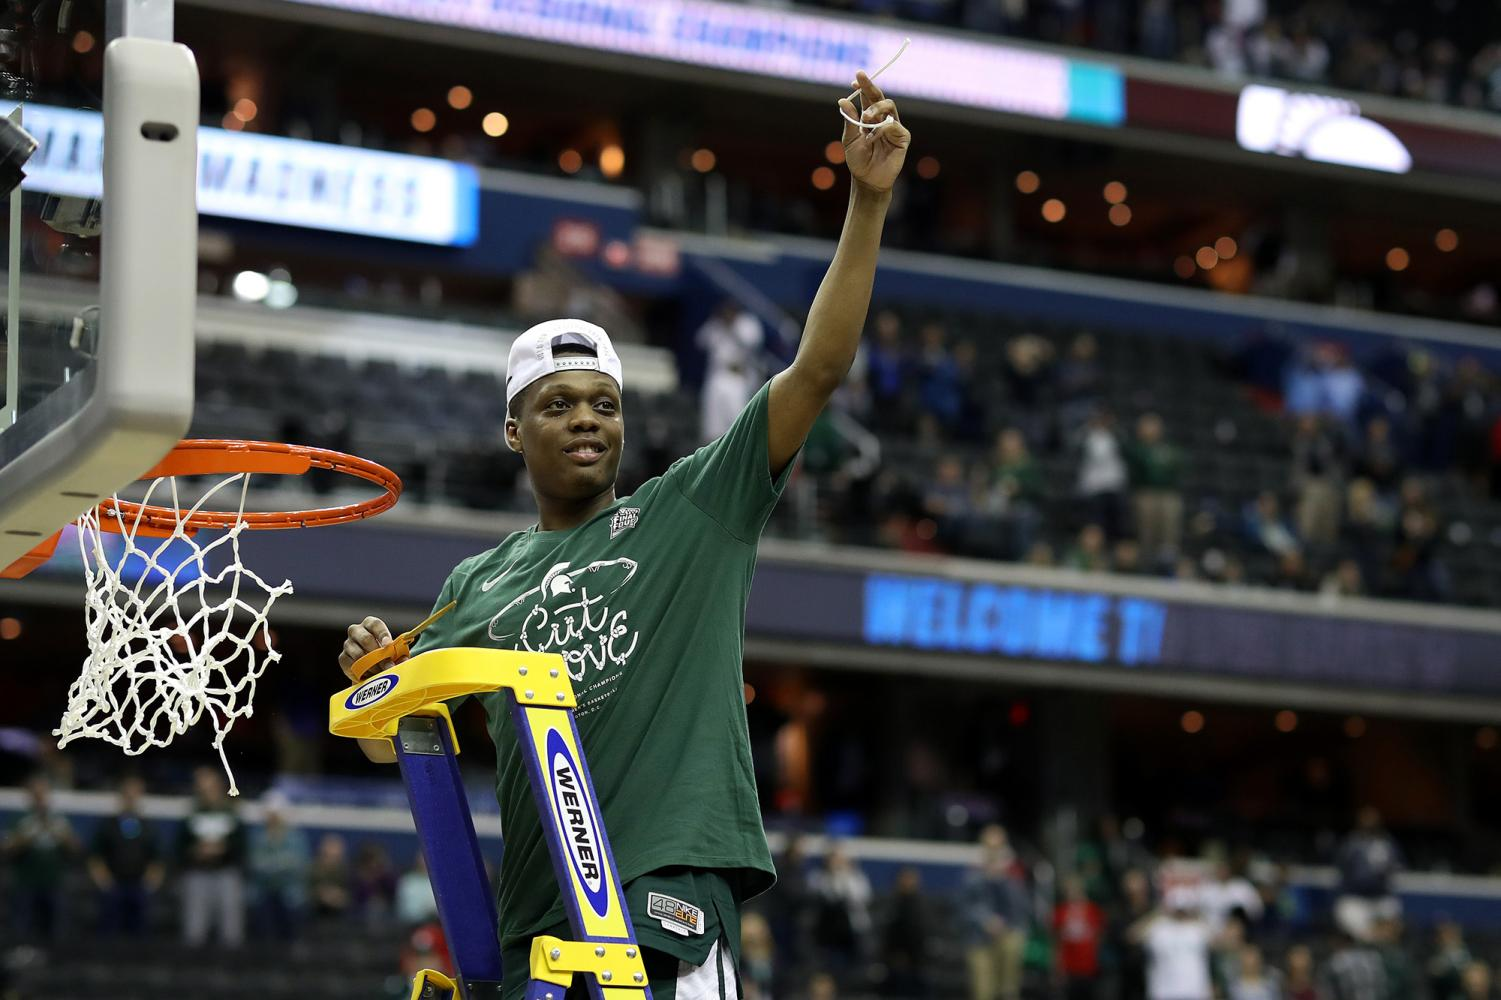 Cassius Winston (5) of the Michigan State Spartans celebrates by cutting down the net after defeating the Duke Blue Devils in the East Regional Final of the 2019 NCAA Men's Basketball Tournament on Sunday, March 31, 2019 at Capital One Arena in Washington, D.C. The Michigan State Spartans defeated the Duke Blue Devils 68-67.